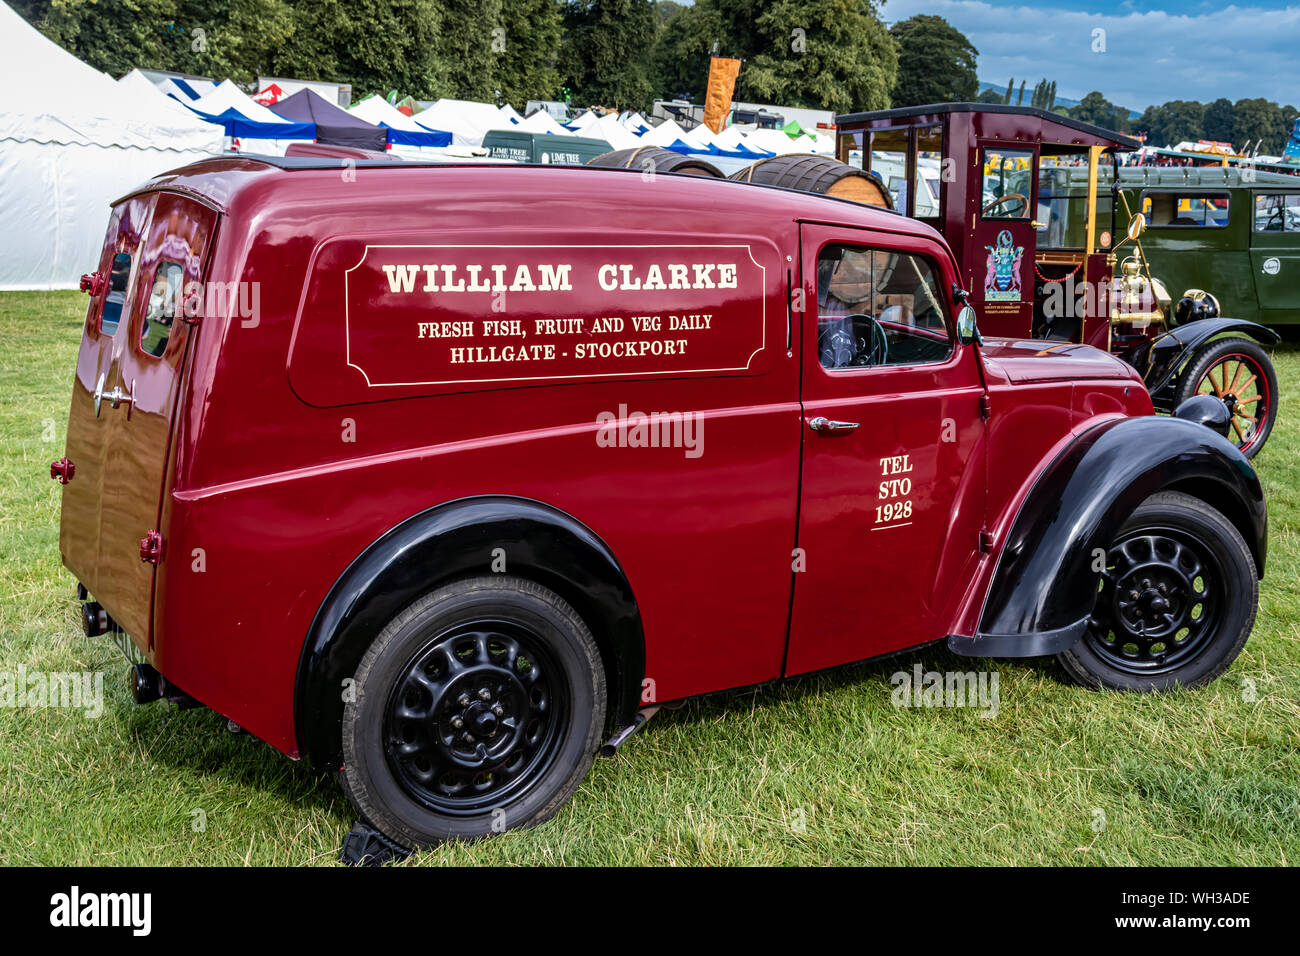 Los coches antiguos, furgonetas, camiones y buses en Chatsworth House Country Fair 2019,Peak District de Derbyshire, Inglaterra. Foto de stock